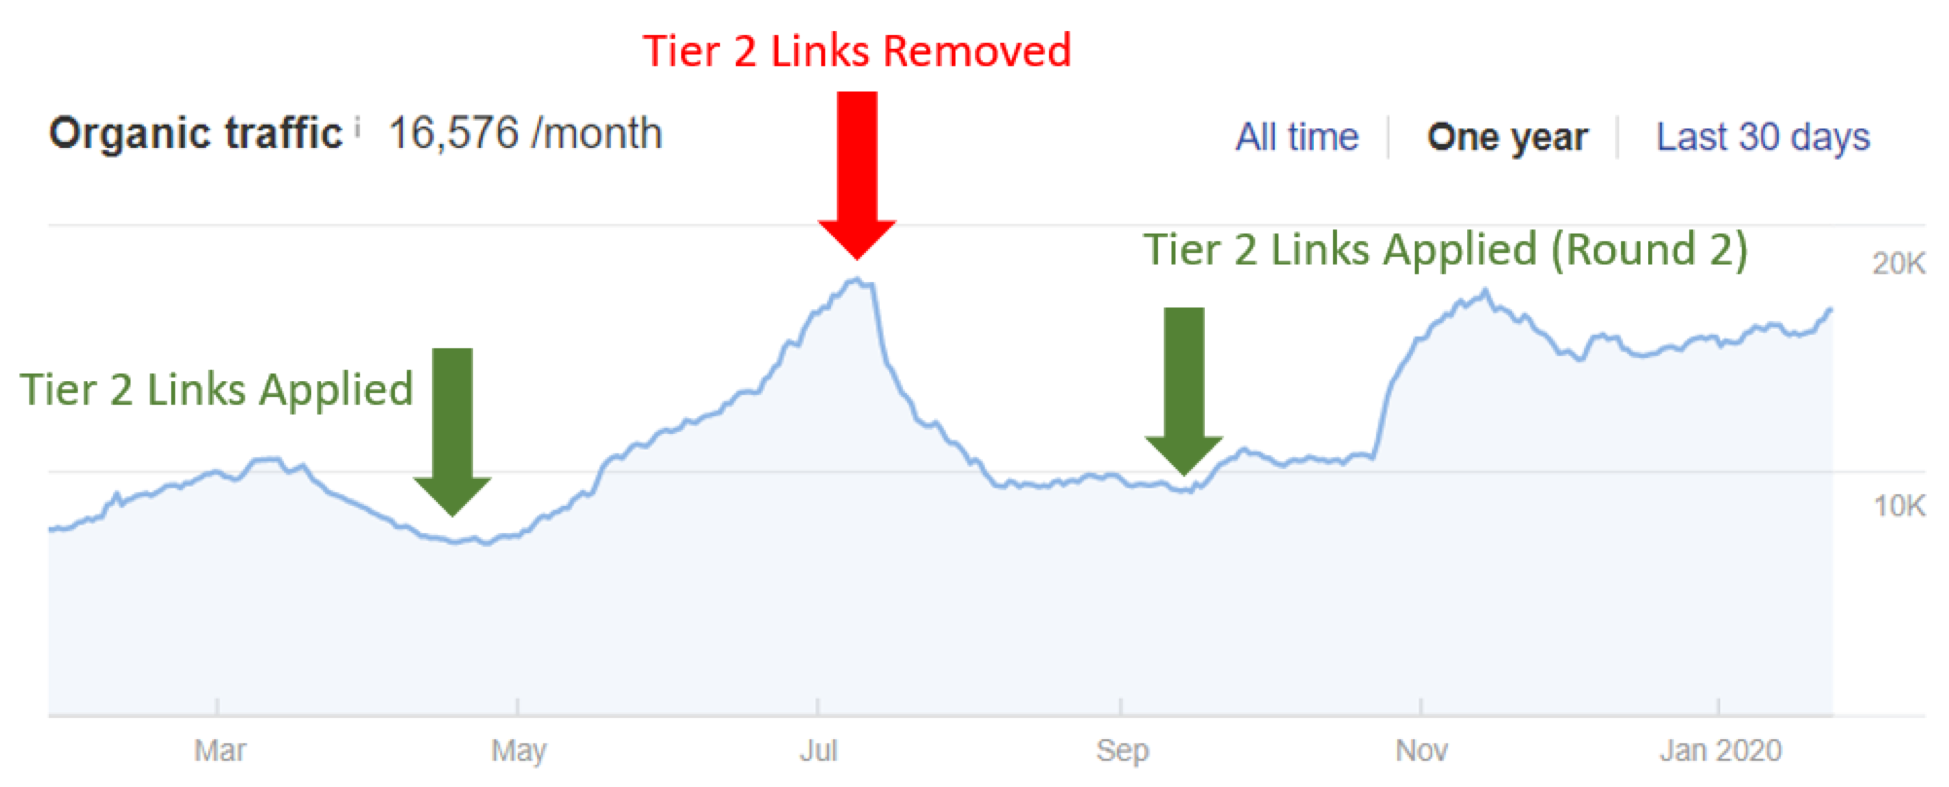 organic traffic with tier 2 applied graph